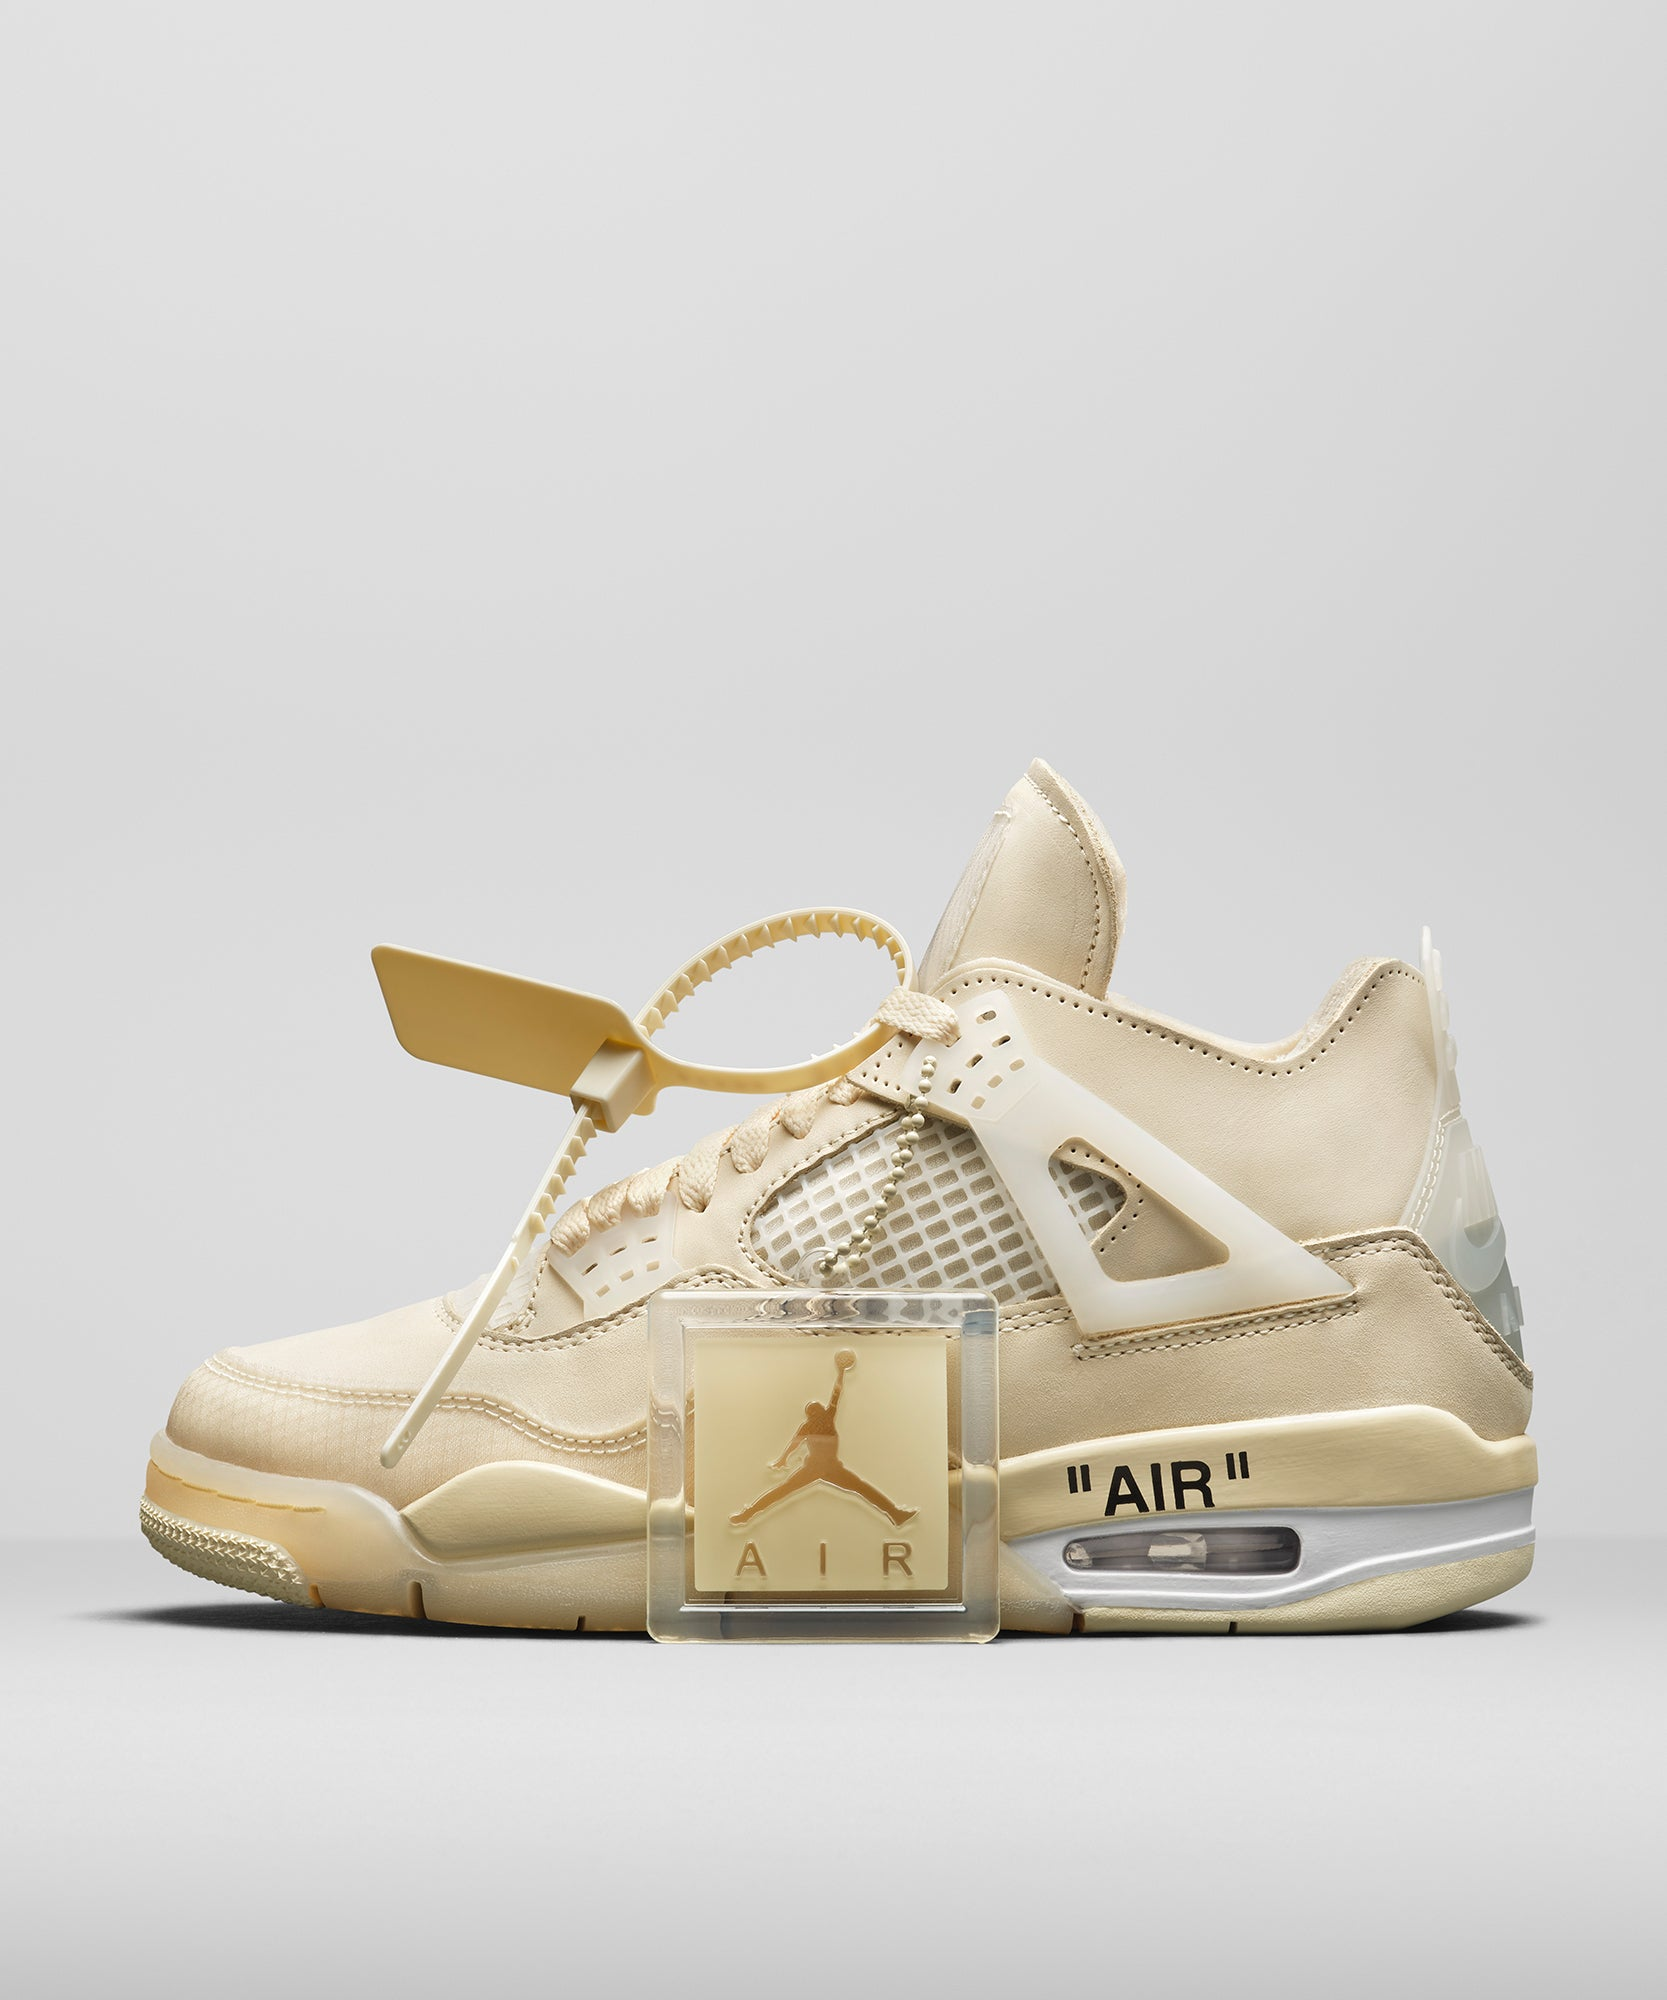 Air Jordan 4 WMNS x Off White (Sail/Muslin-White-Black)